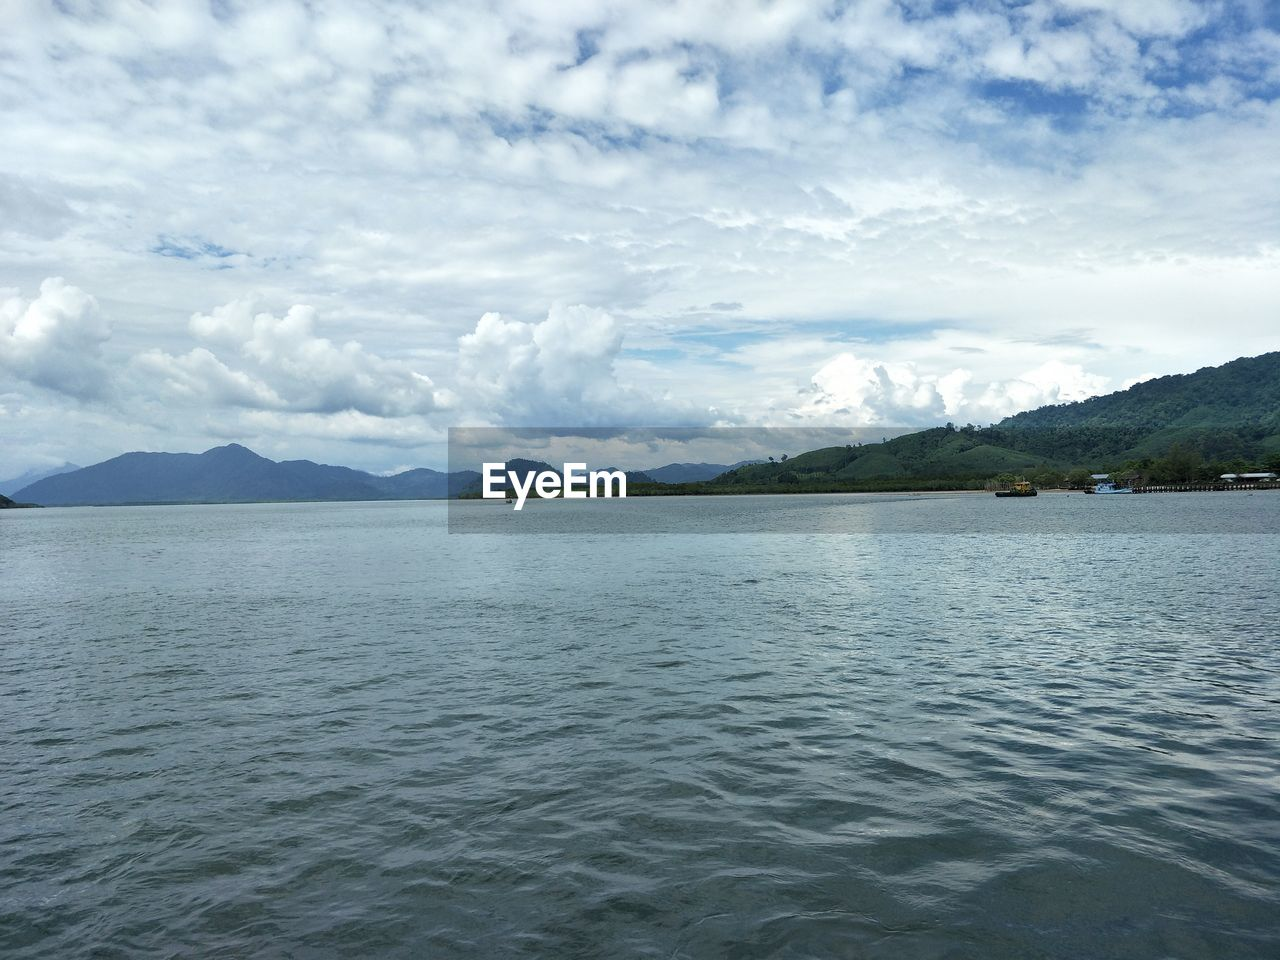 water, scenics - nature, sky, cloud - sky, beauty in nature, tranquil scene, tranquility, mountain, waterfront, sea, nature, idyllic, no people, day, non-urban scene, mountain range, rippled, remote, outdoors